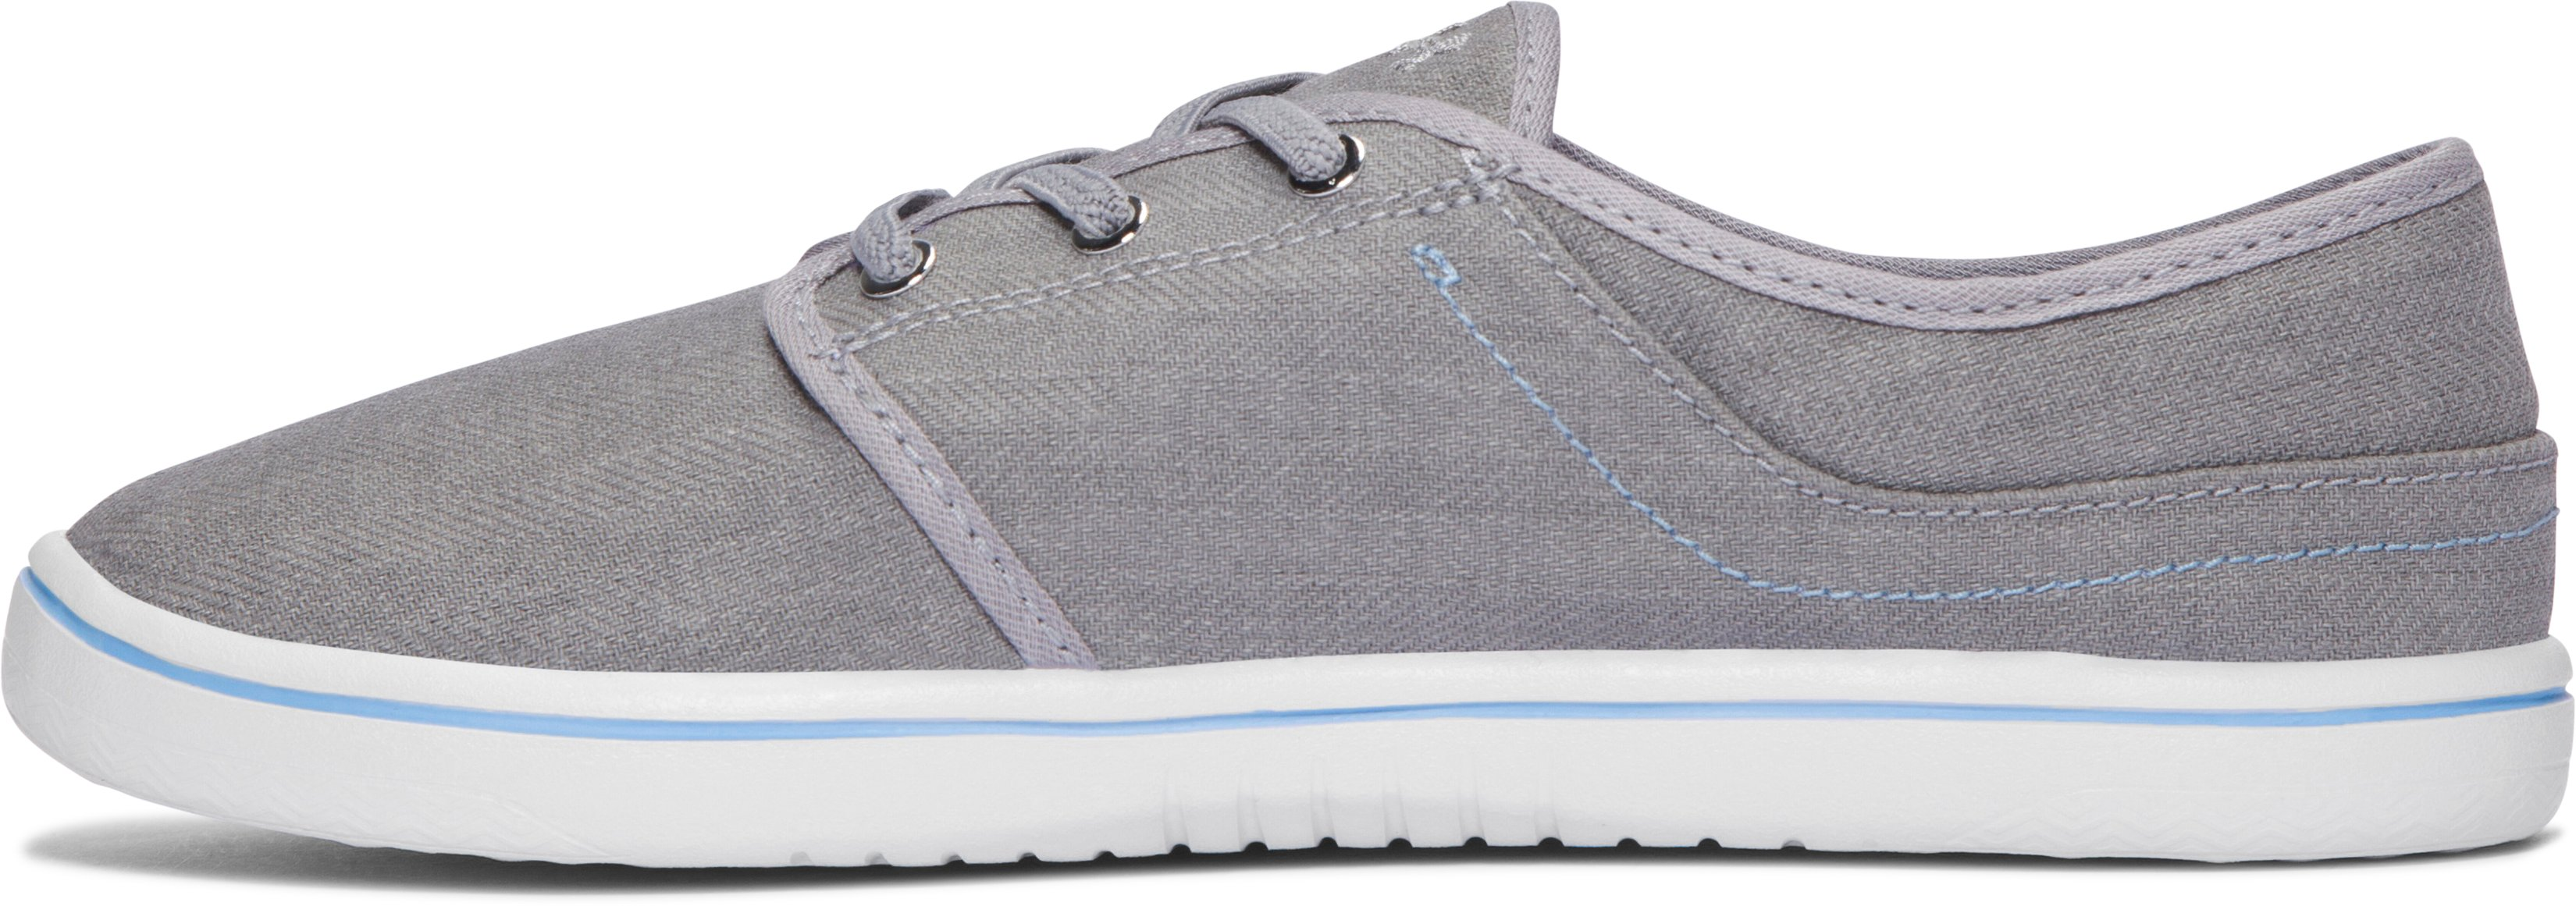 Women's UA Street Encounter Shoes, GRAY WOLF, undefined